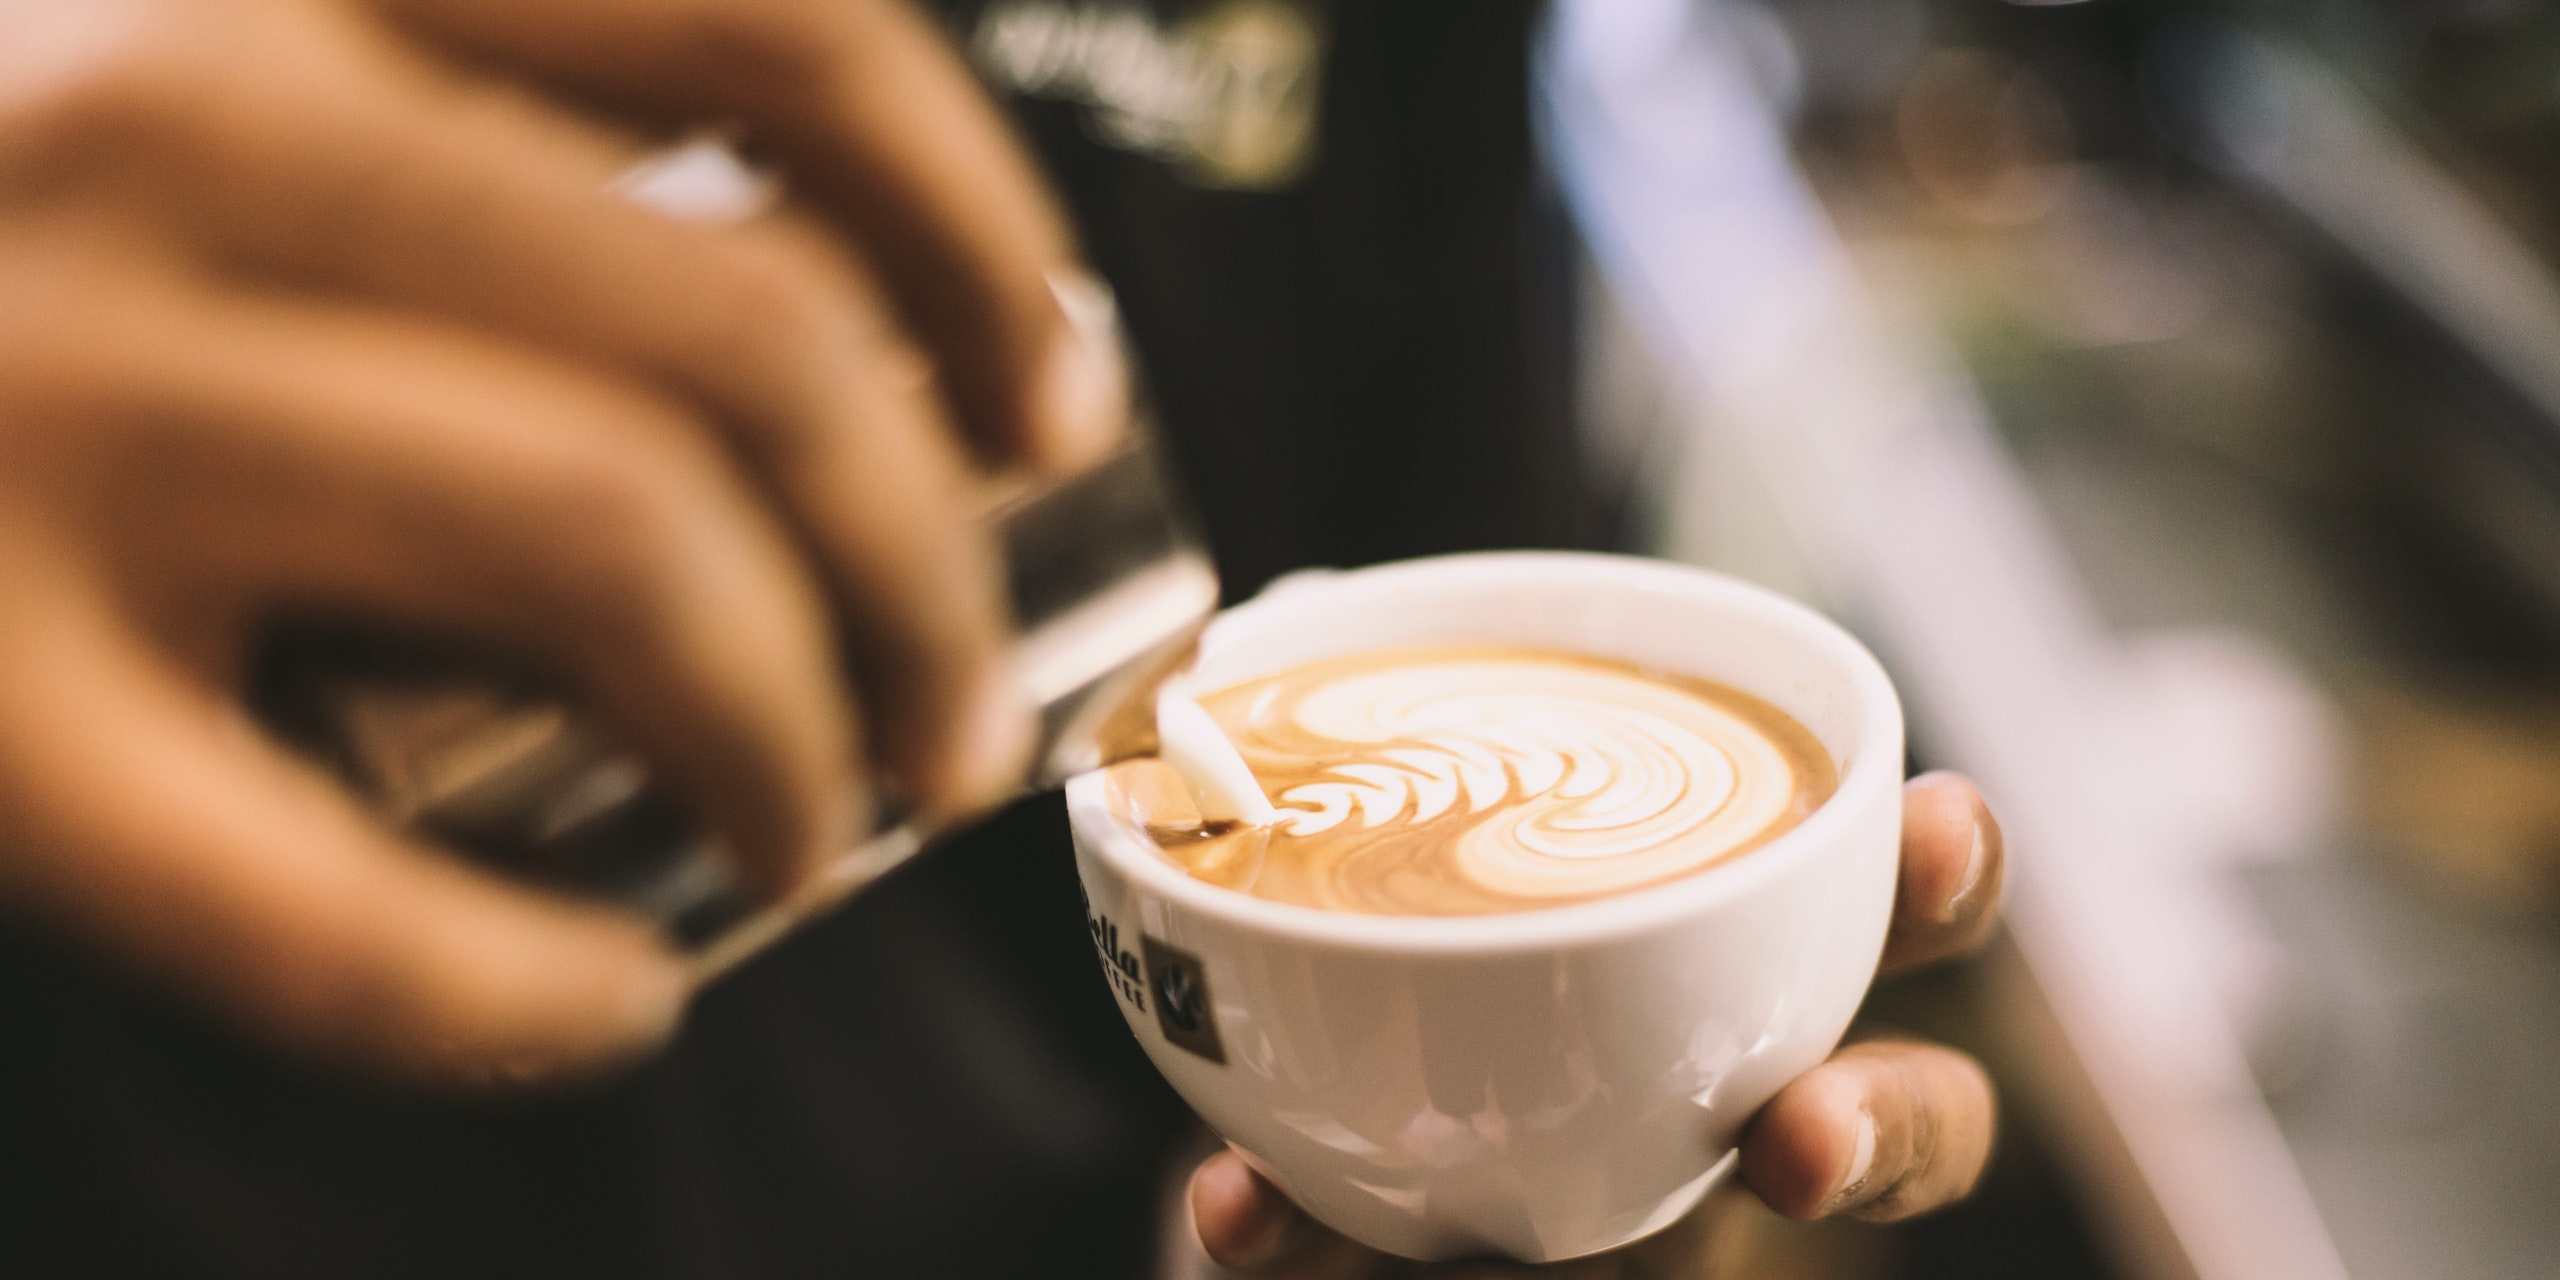 CERTIFICATE PROGRAM IN BARISTA SKILLS